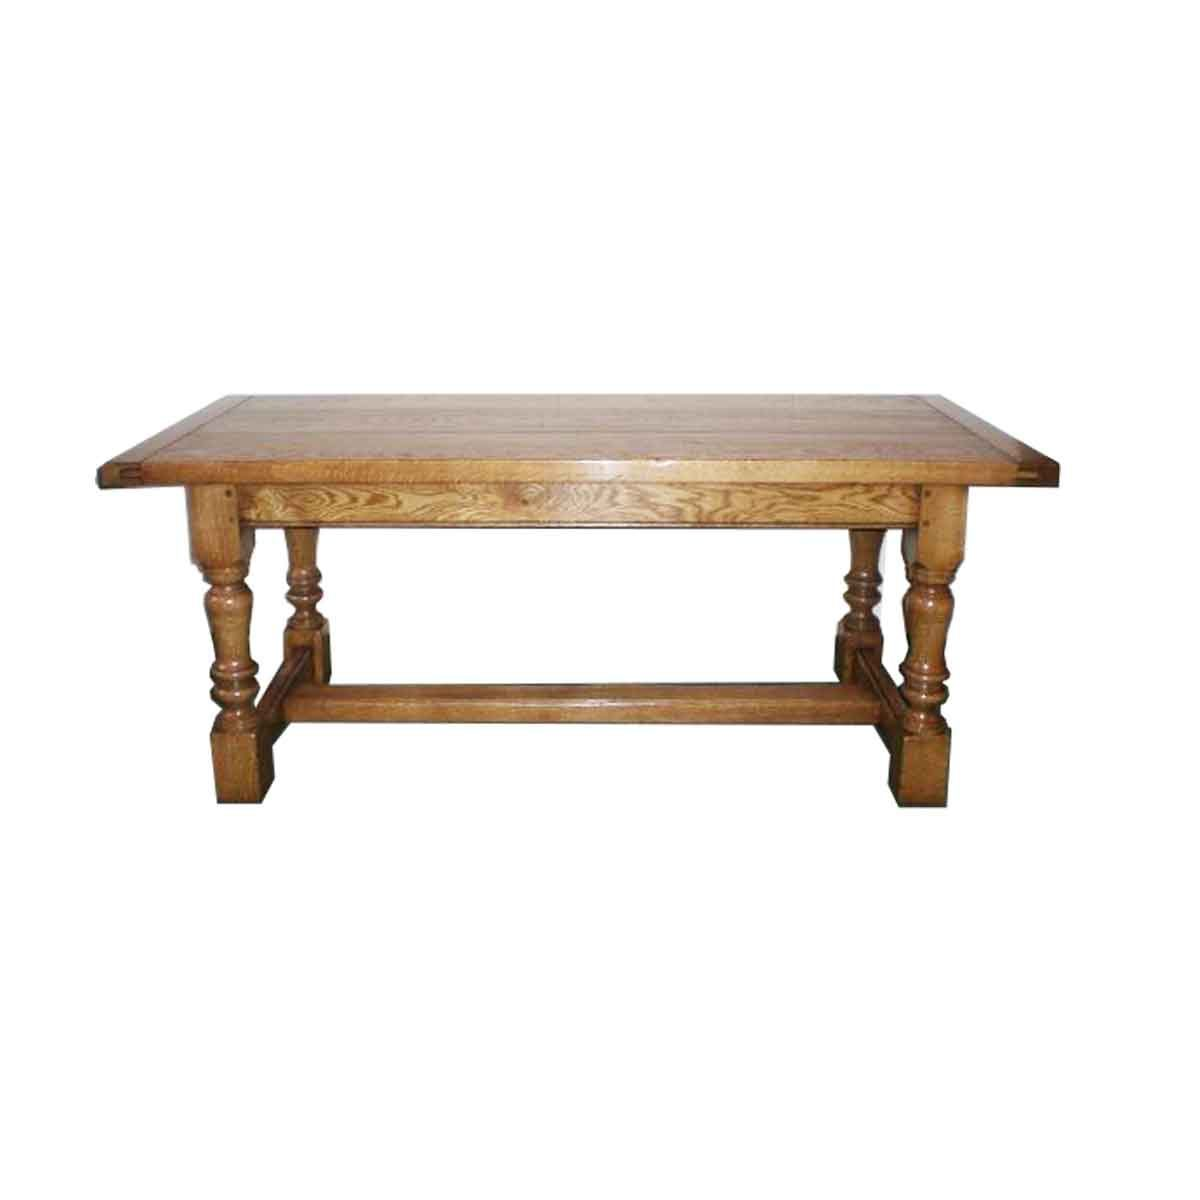 Bespoke Baluster Refectory Table Handcrafted in Suffolk